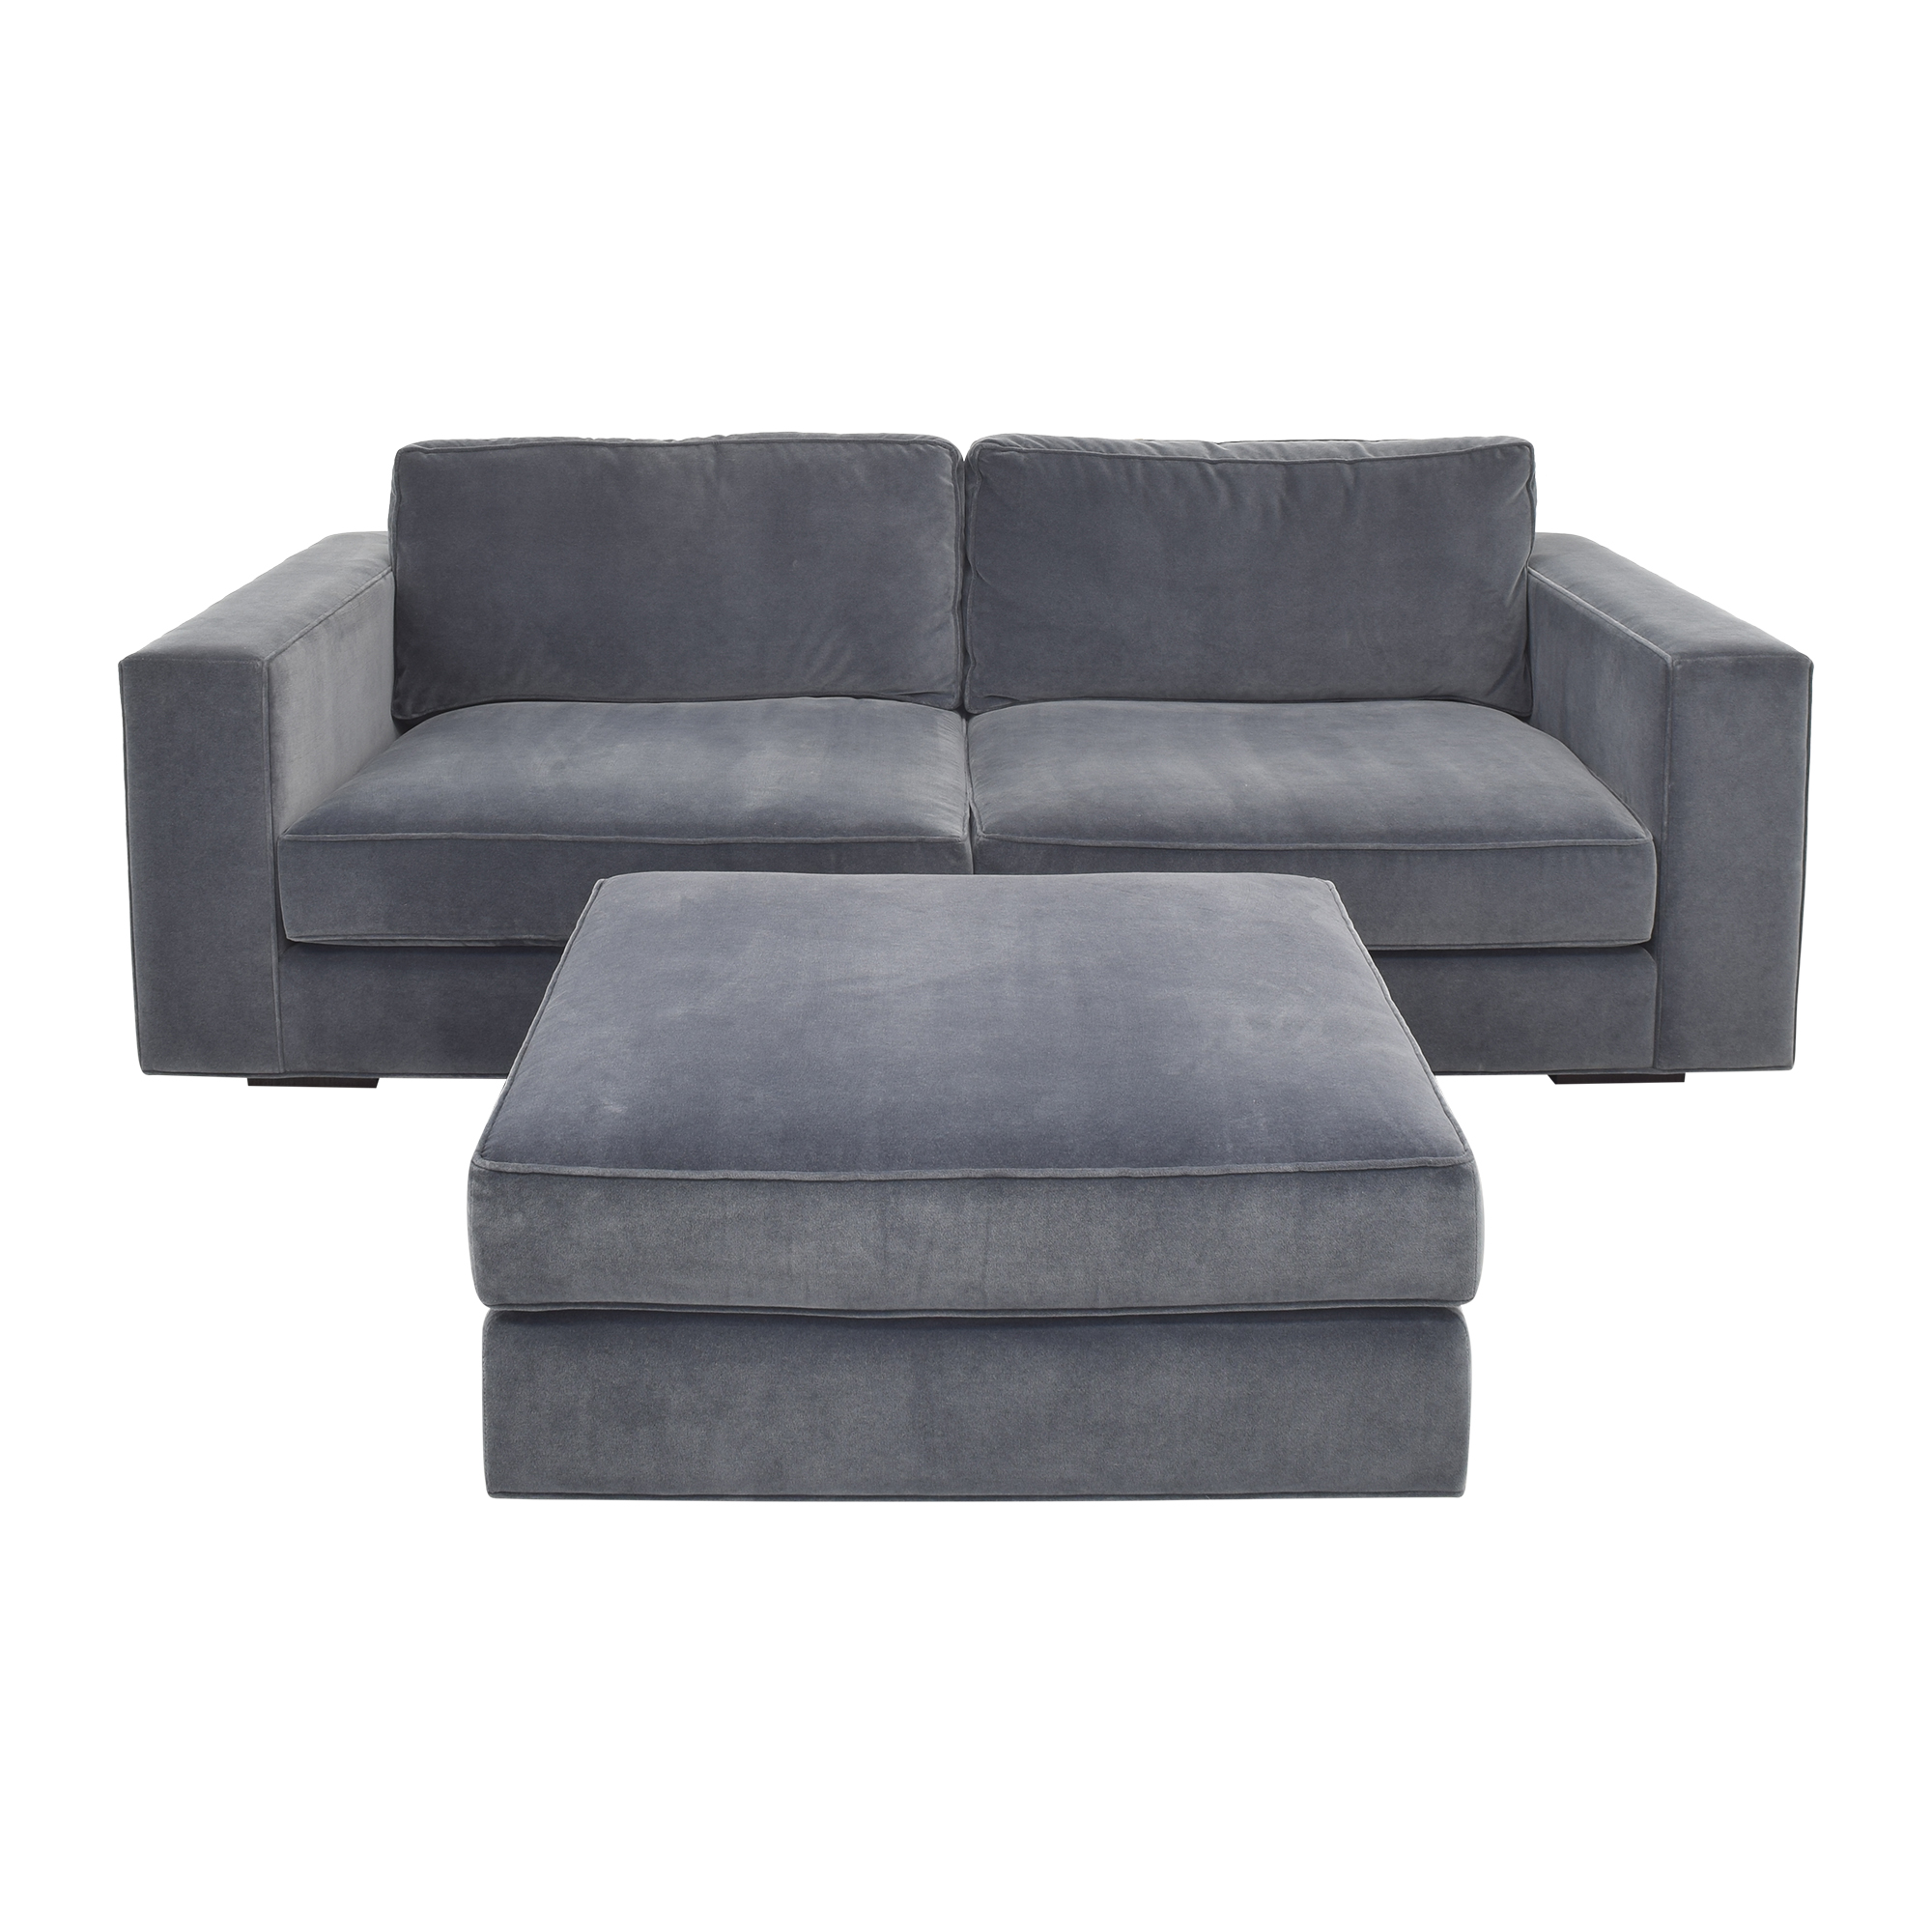 shop Restoration Hardware Maddox Sectional Sofa with Ottoman Restoration Hardware Sectionals